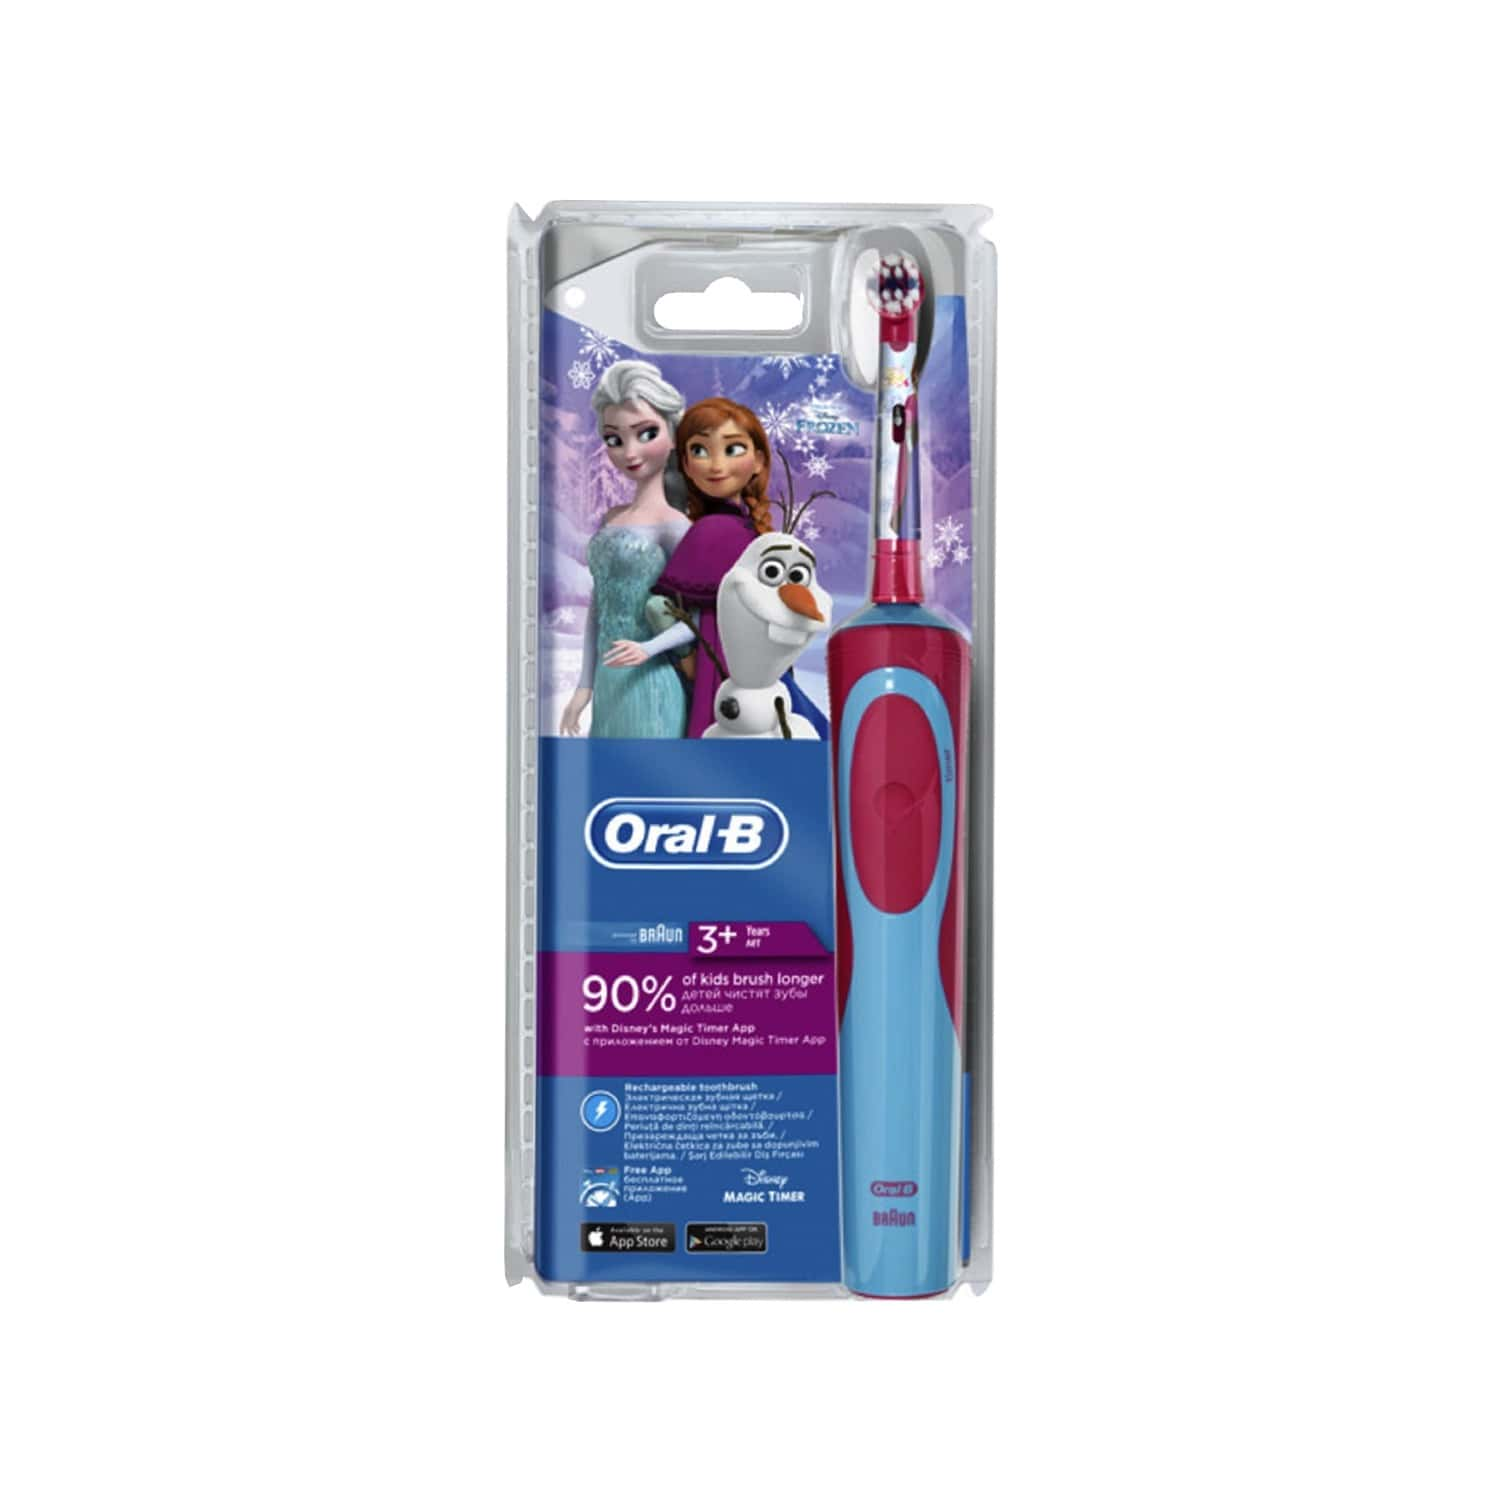 Oral-b Kids  Electric Rechargeable Toothbrush Featuring Frozen Characters